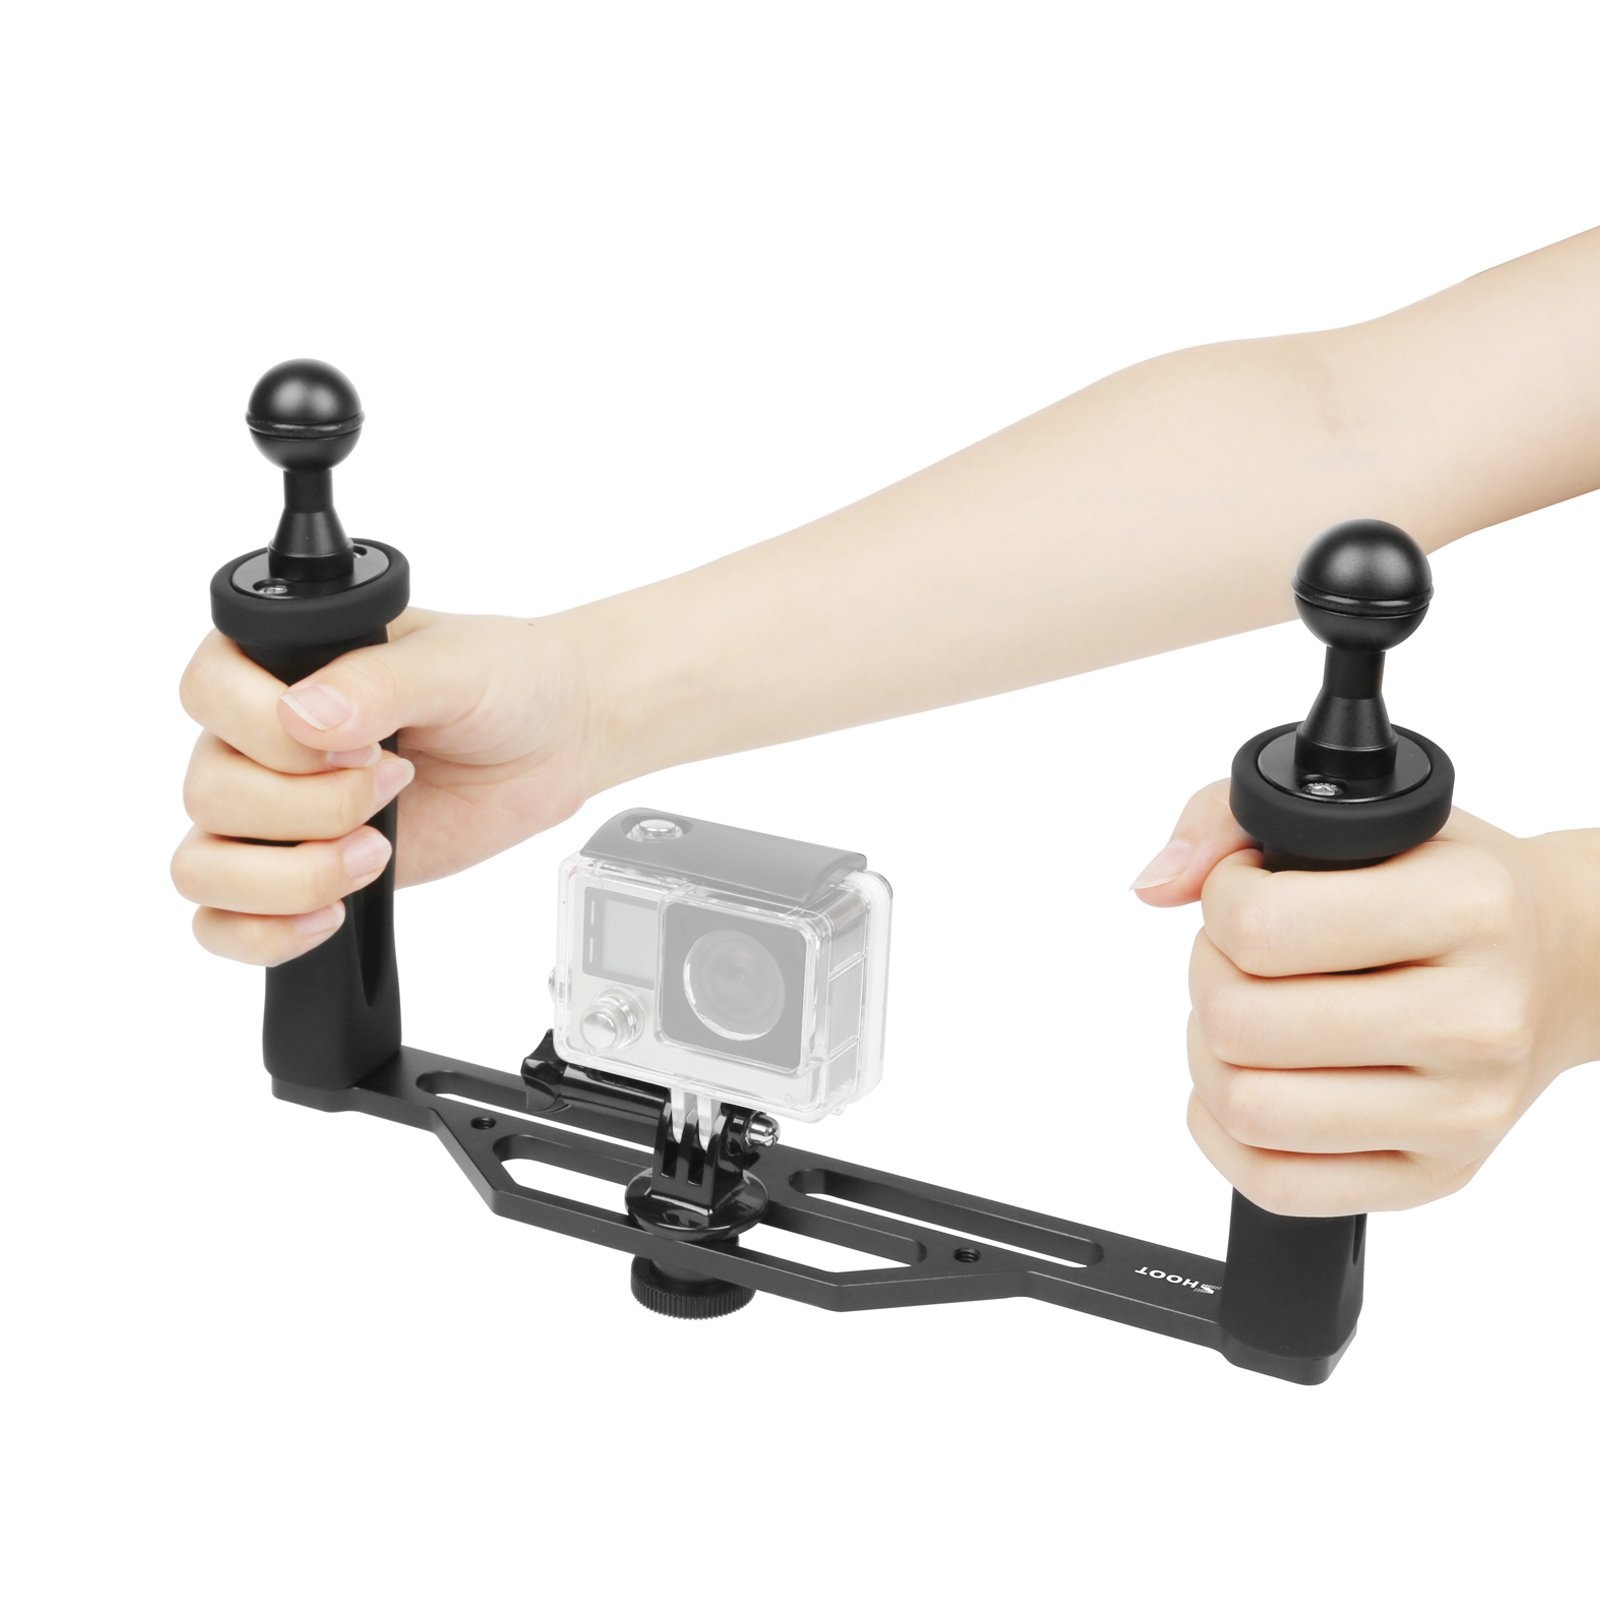 SHOOT Aluminium Alloy Underwater Video Light Stabilizer Tray for GoPro OSMO and Any Other Camera with 1/4 inch Screw Hole by SHOOT